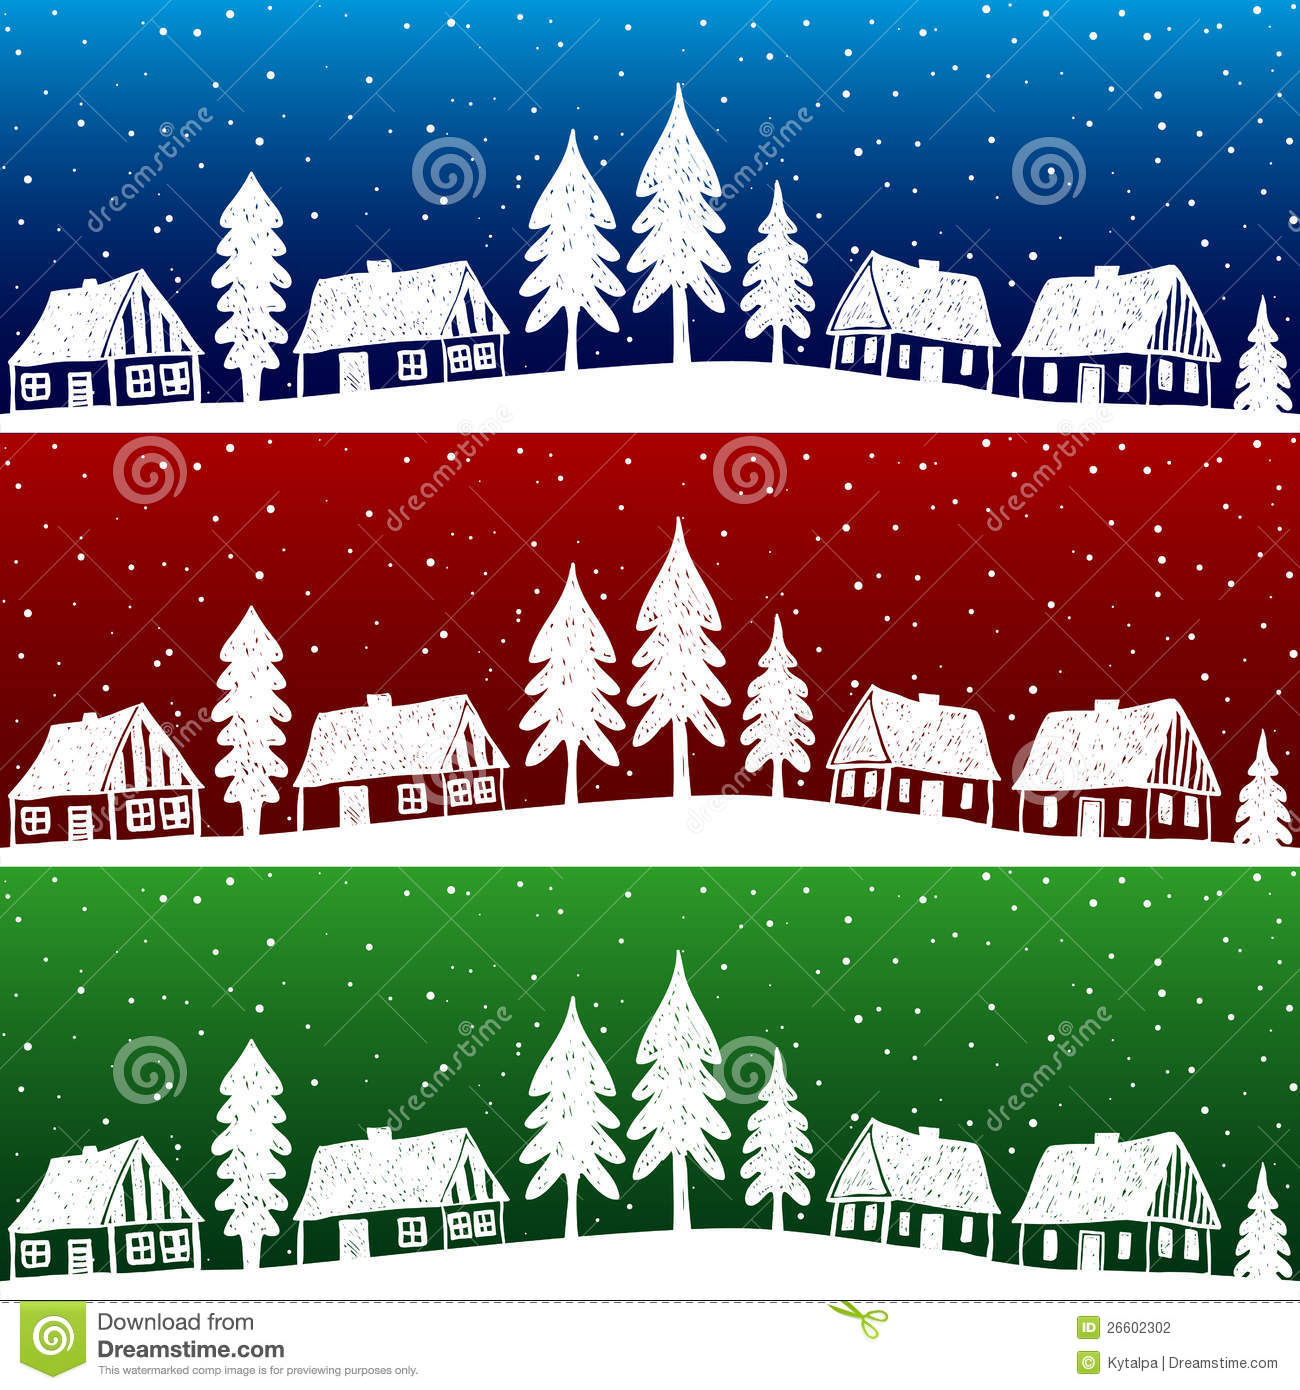 Christmas Village With Snow Seamless Pattern Stock Vector